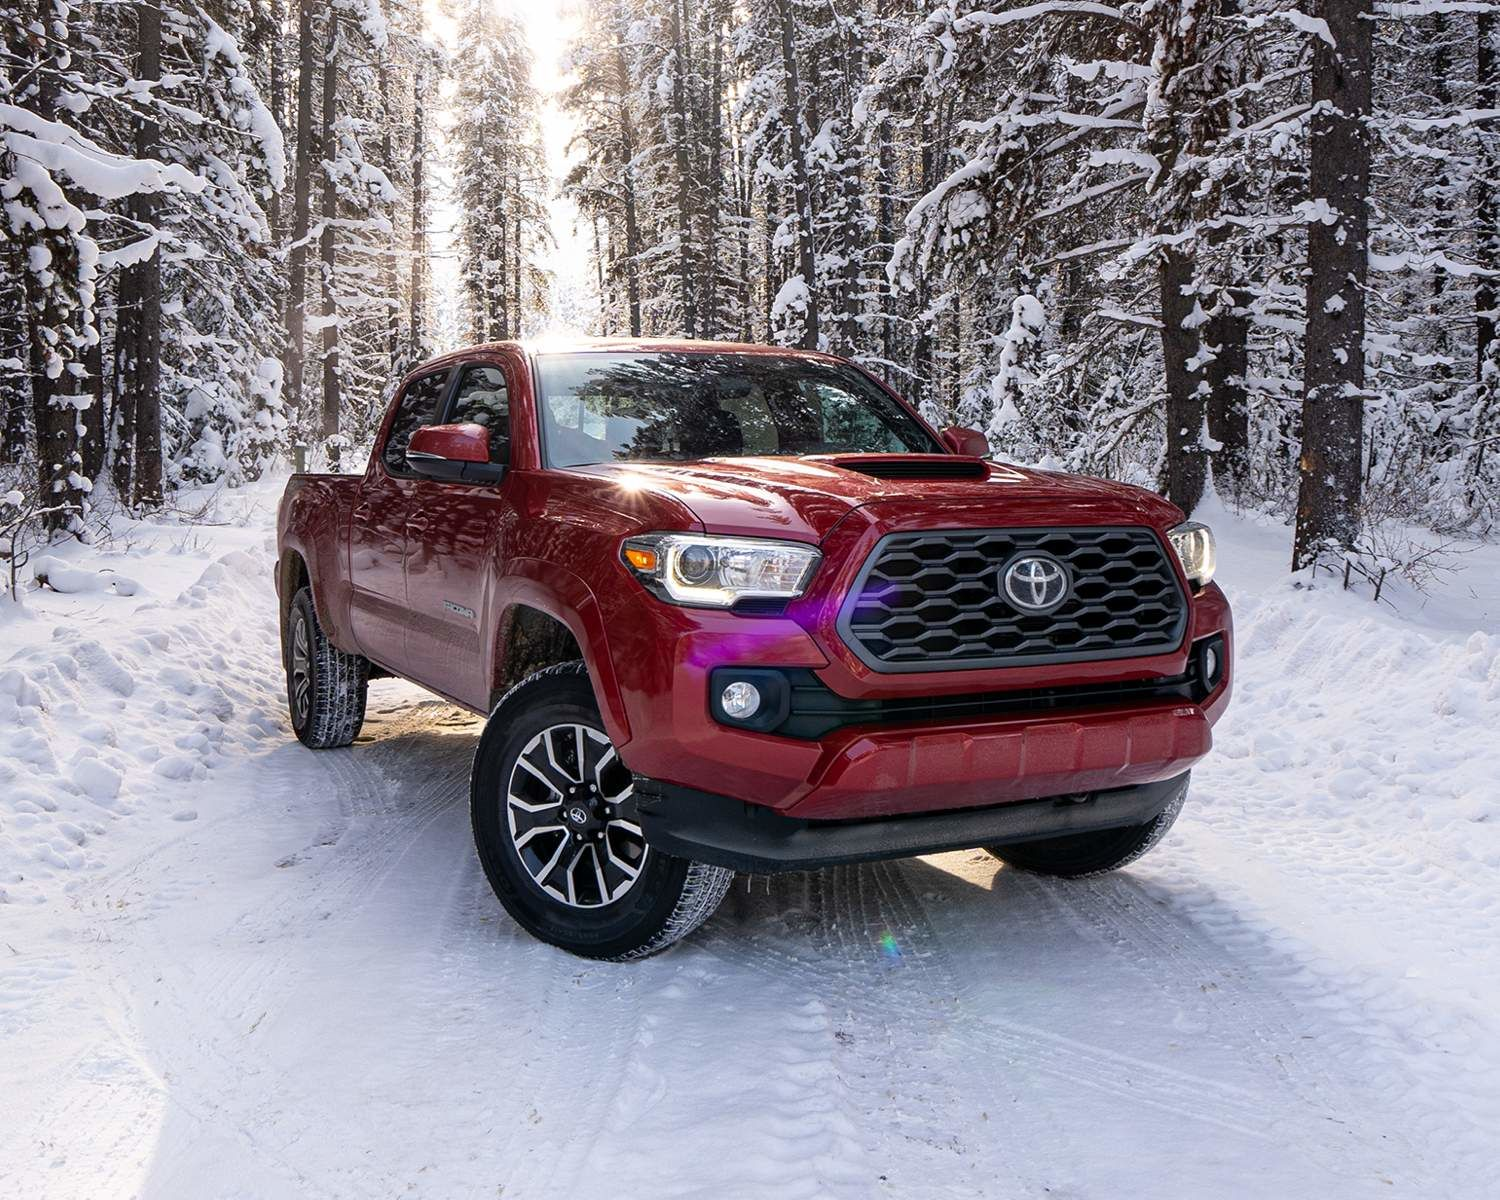 Tacoma TRD Sport Premium shown in Barcelona Red Metallic